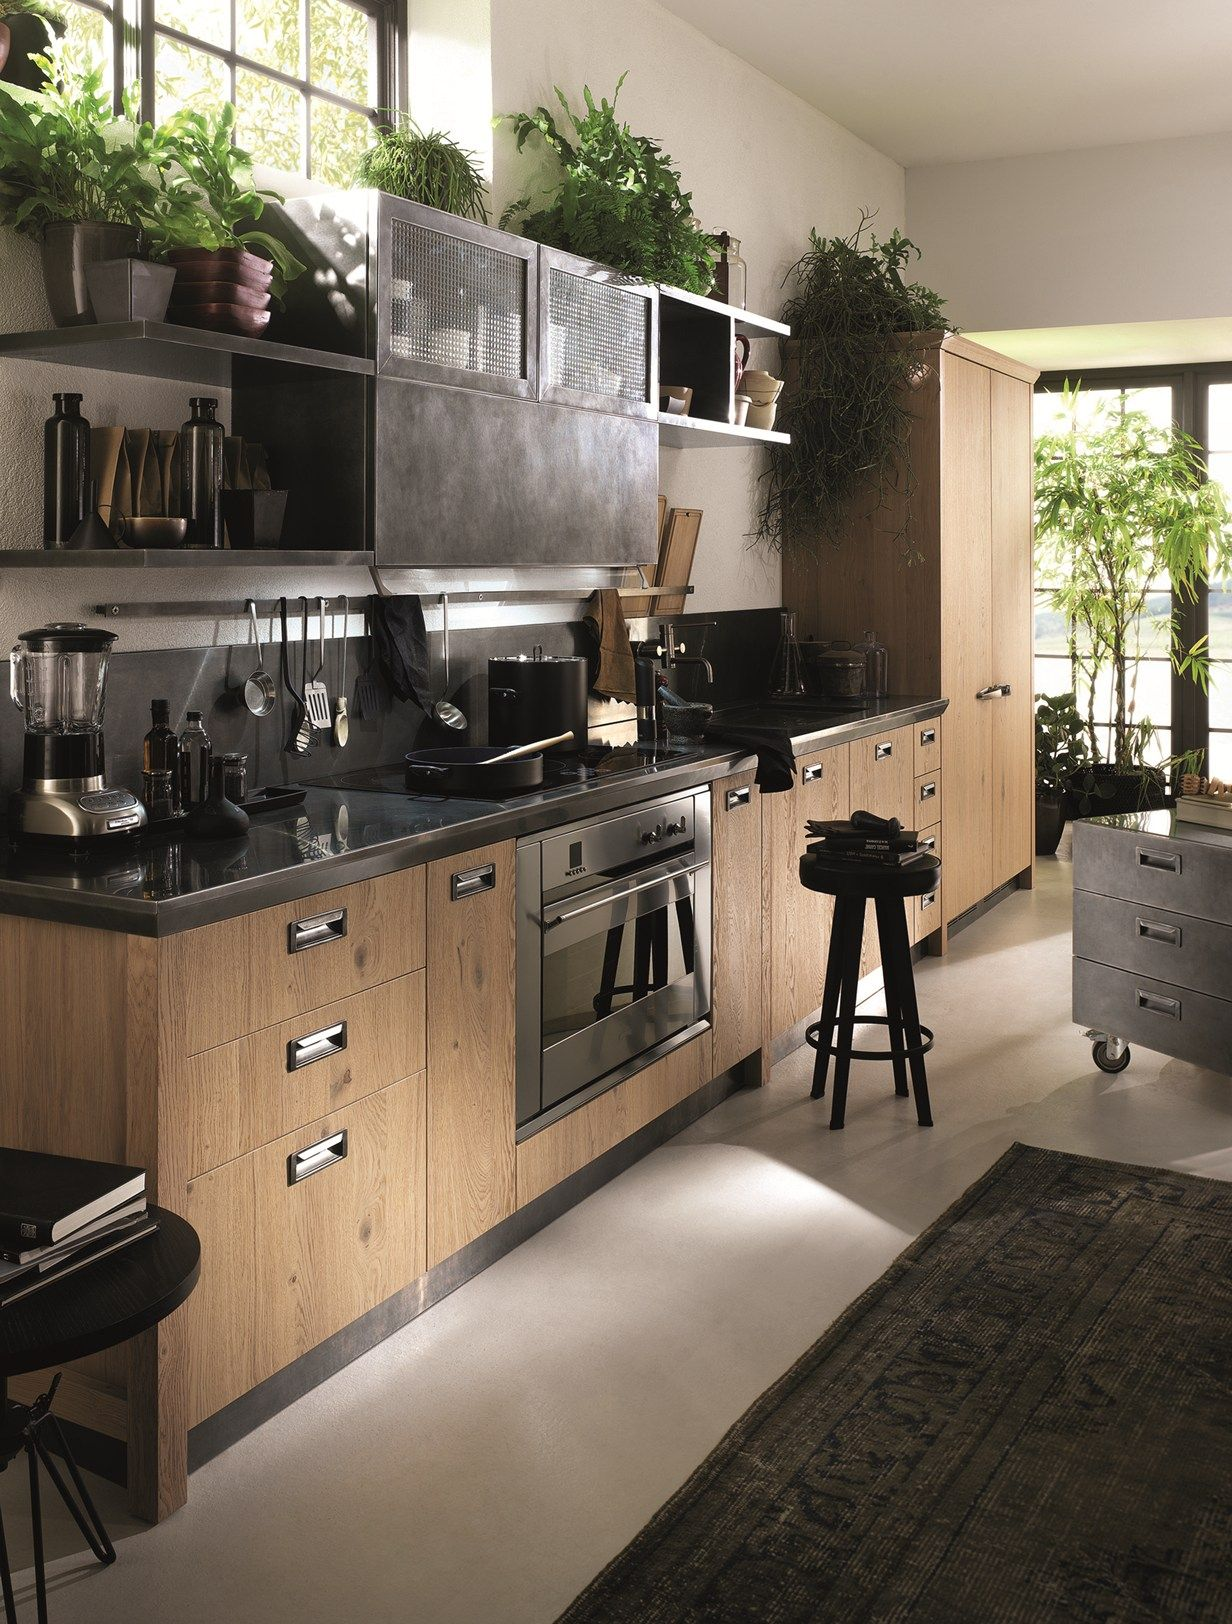 Diesel with Scavolini: the other side of the kitchen Anima vintage ...